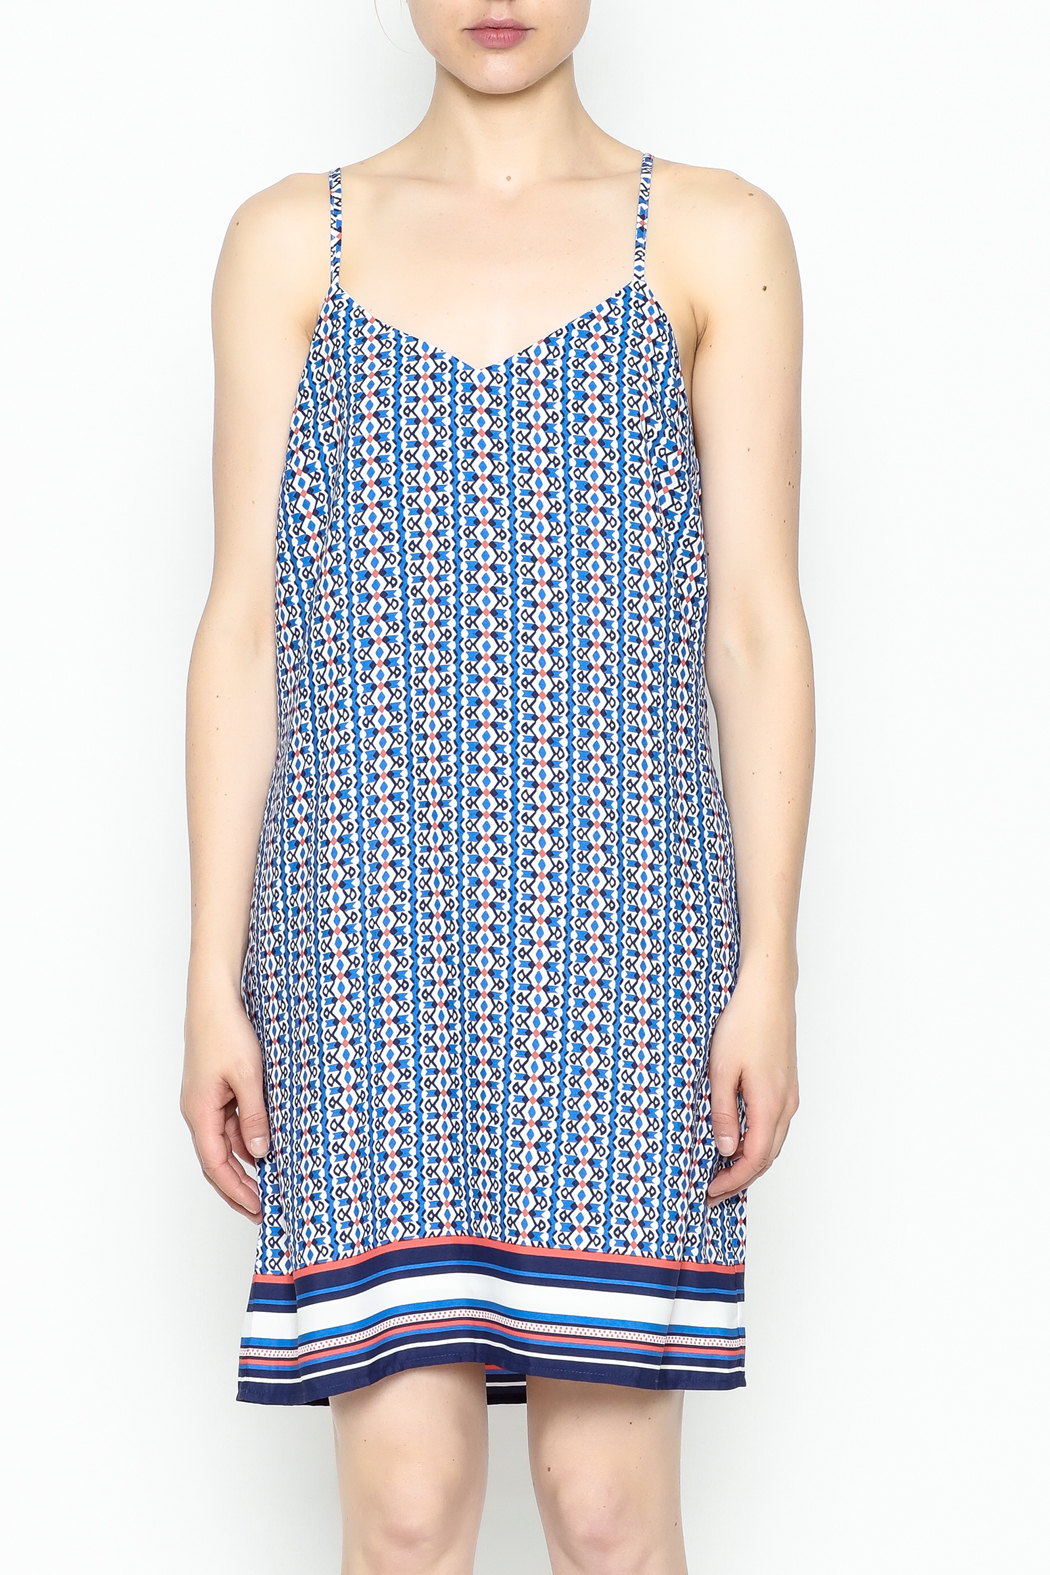 Skies Are Blue Printed Summer Dress - Front Full Image